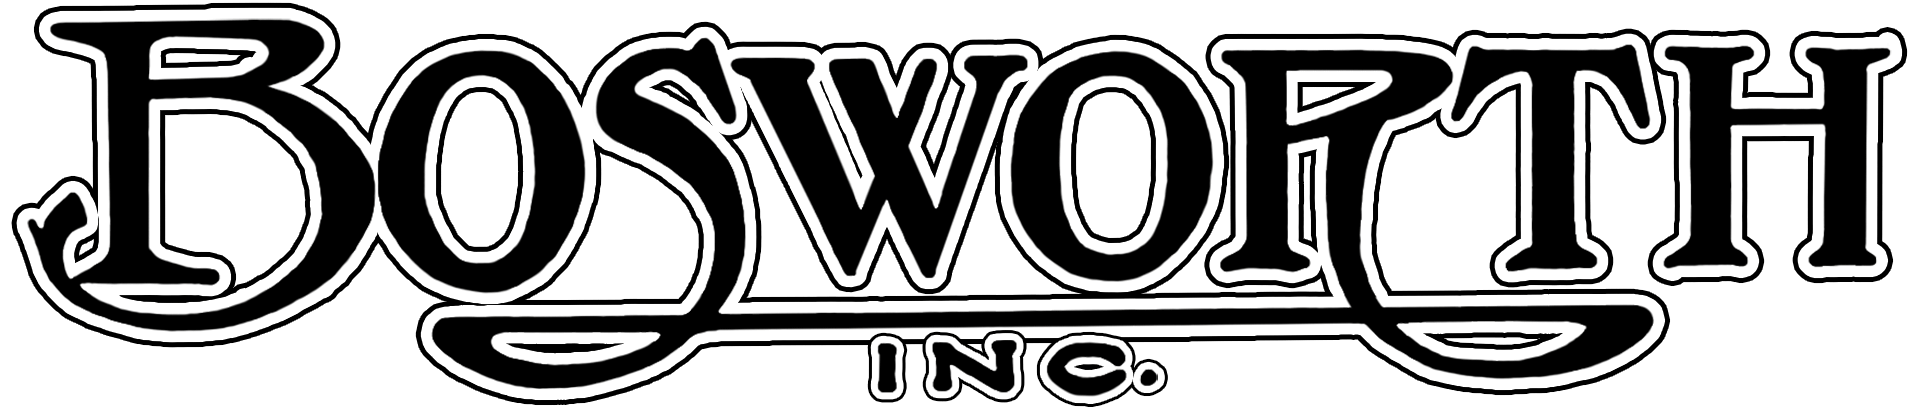 Bosworth logo 1